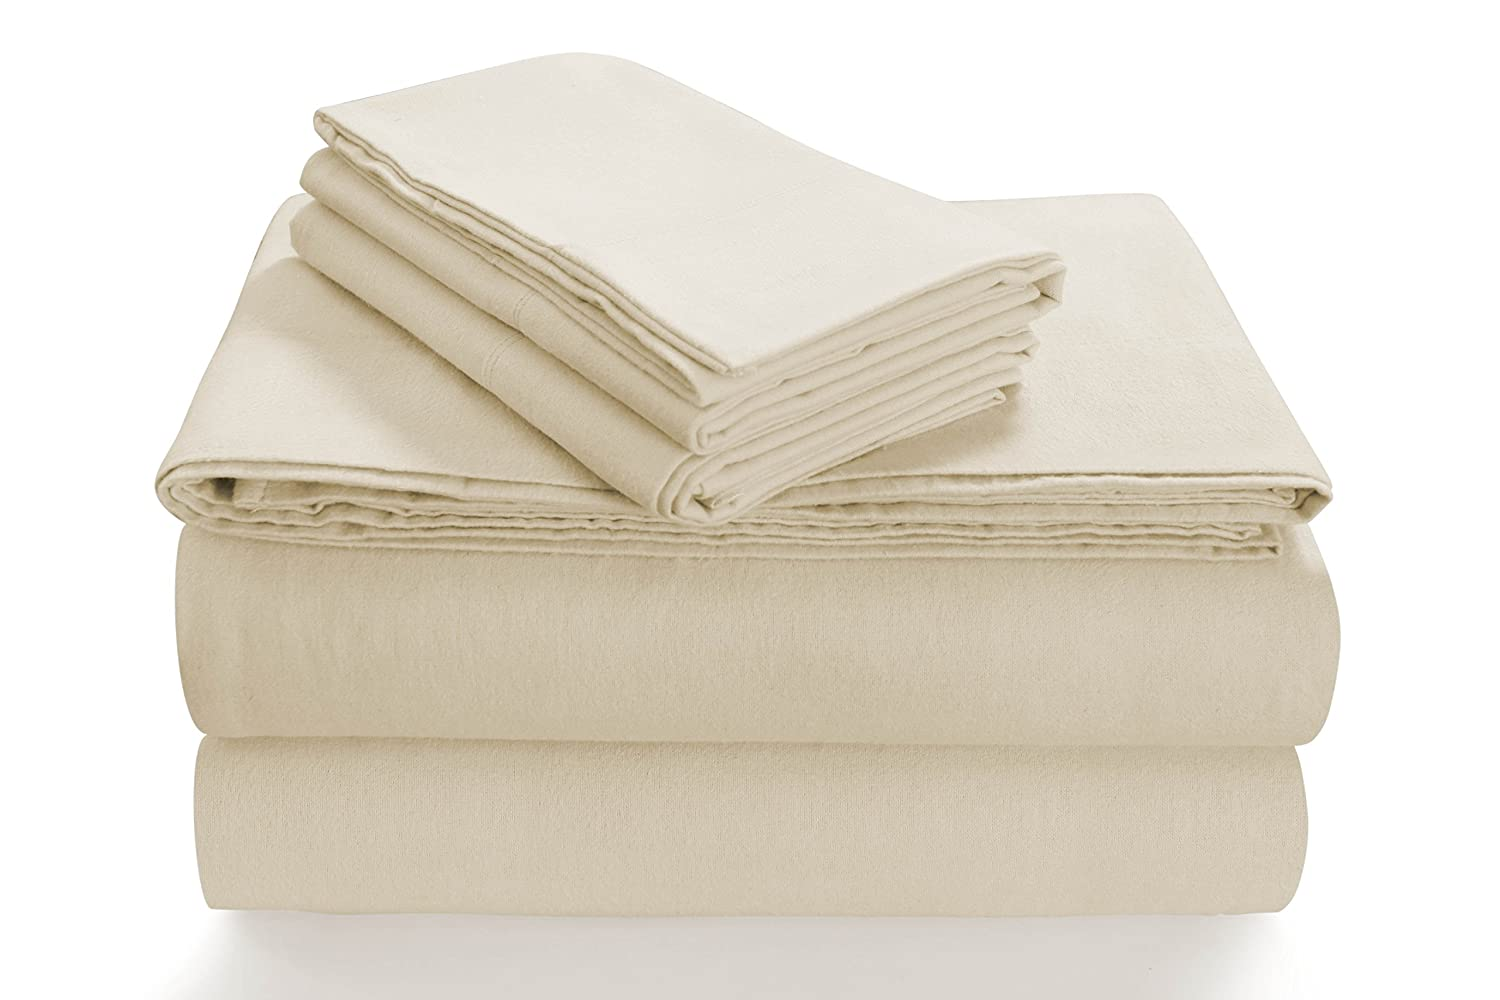 Ivory California King Sheet Set Tribeca Living SOLFL170SSTWSG Solid 5-Ounce Flannel Extra Deep Pocket Sheet Set Twin Silver Grey,